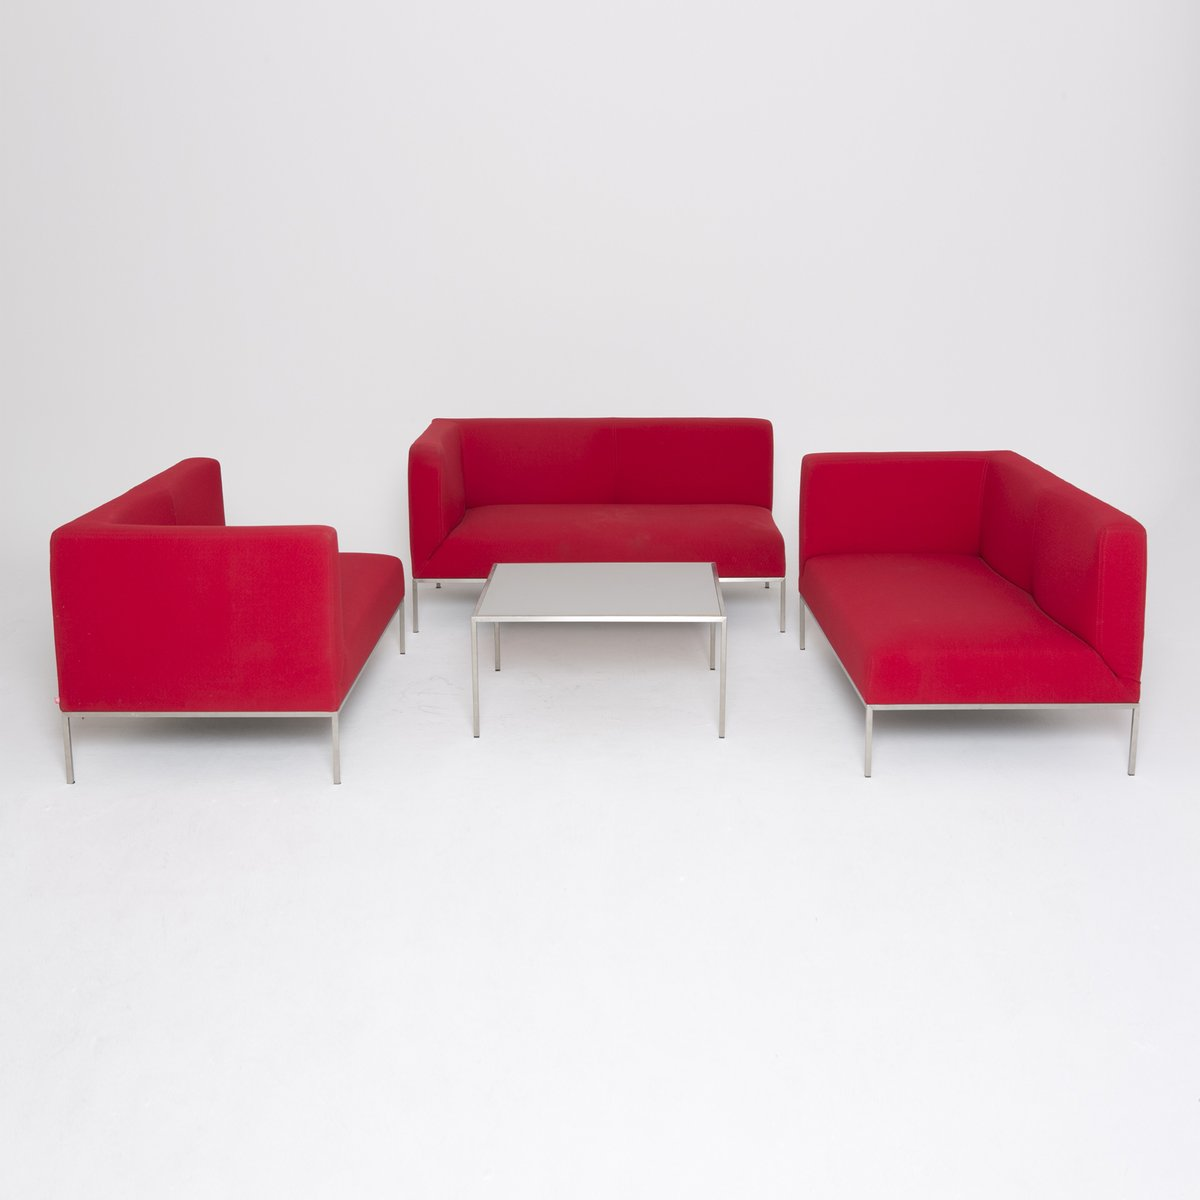 Red Sofa By Marco Maran For Parri 1990s For Sale At Pamono